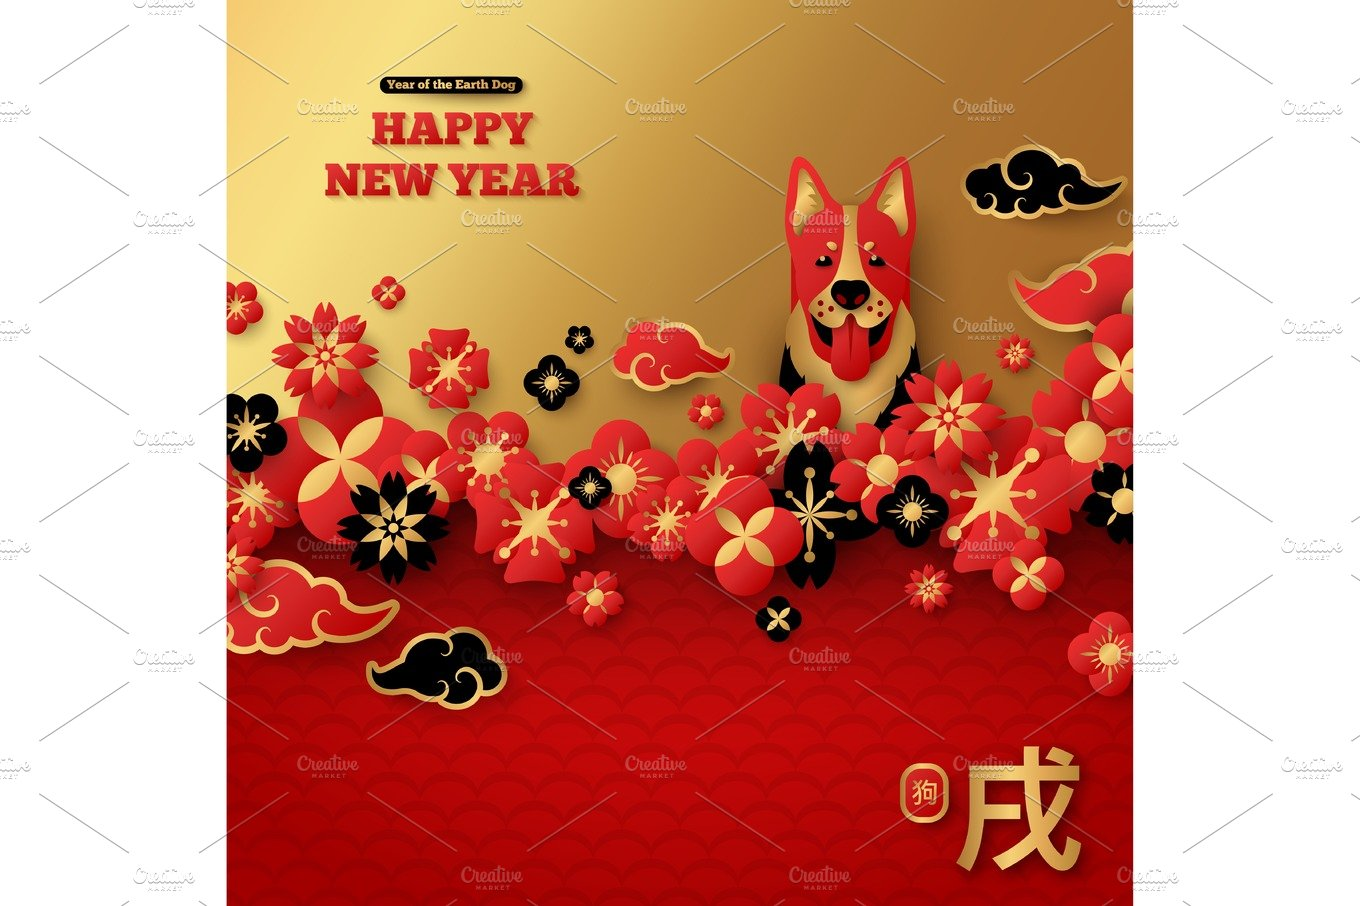 2018 chinese new year greeting card with floral border